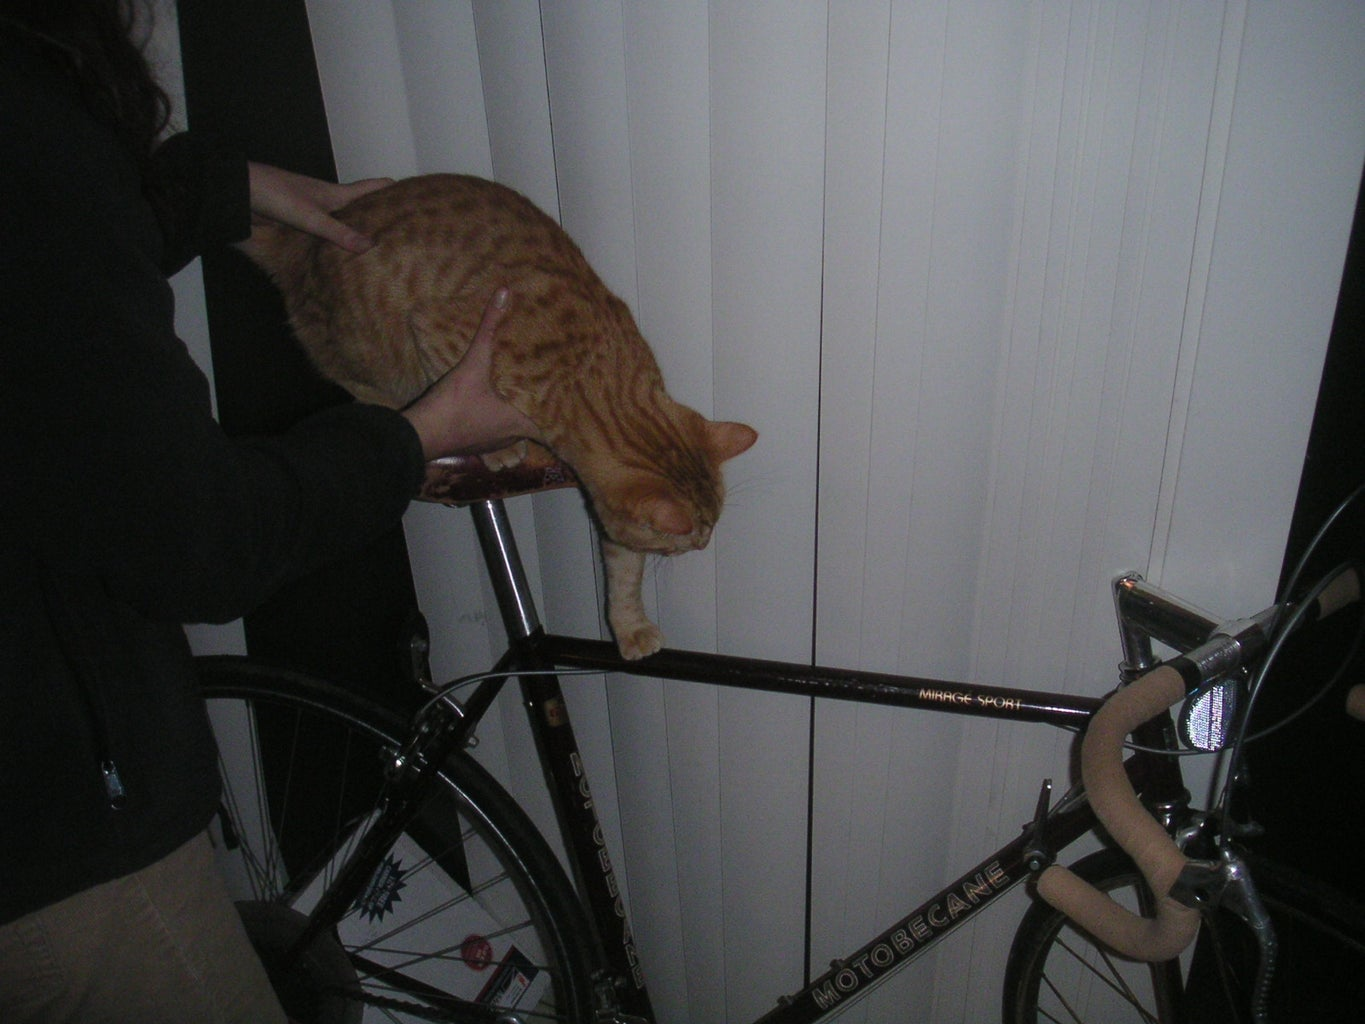 How to Keep Your Bike From Being Stolen